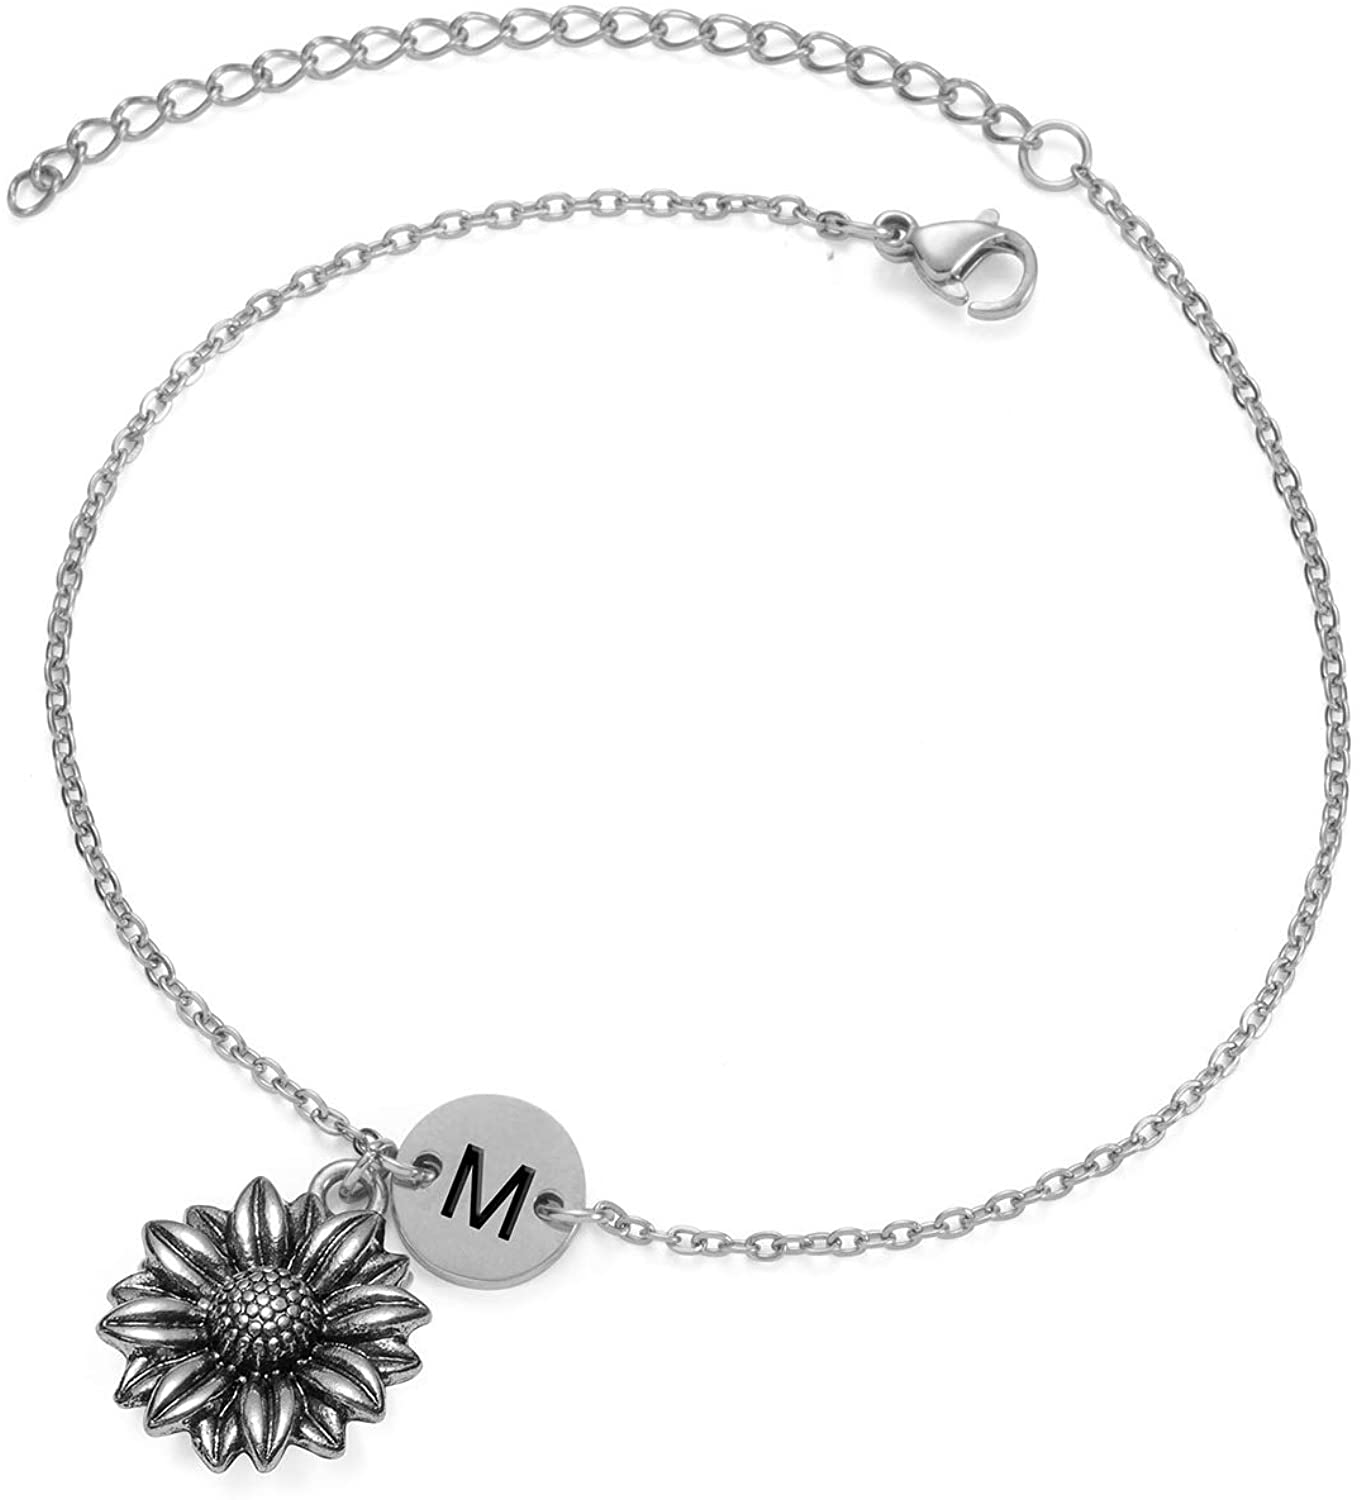 Joycuff Sunflower Bracelets for Women Teen Girls Daughter Best Friend You're My Sunshine Initial Jewelry Birthday Gifts for Her